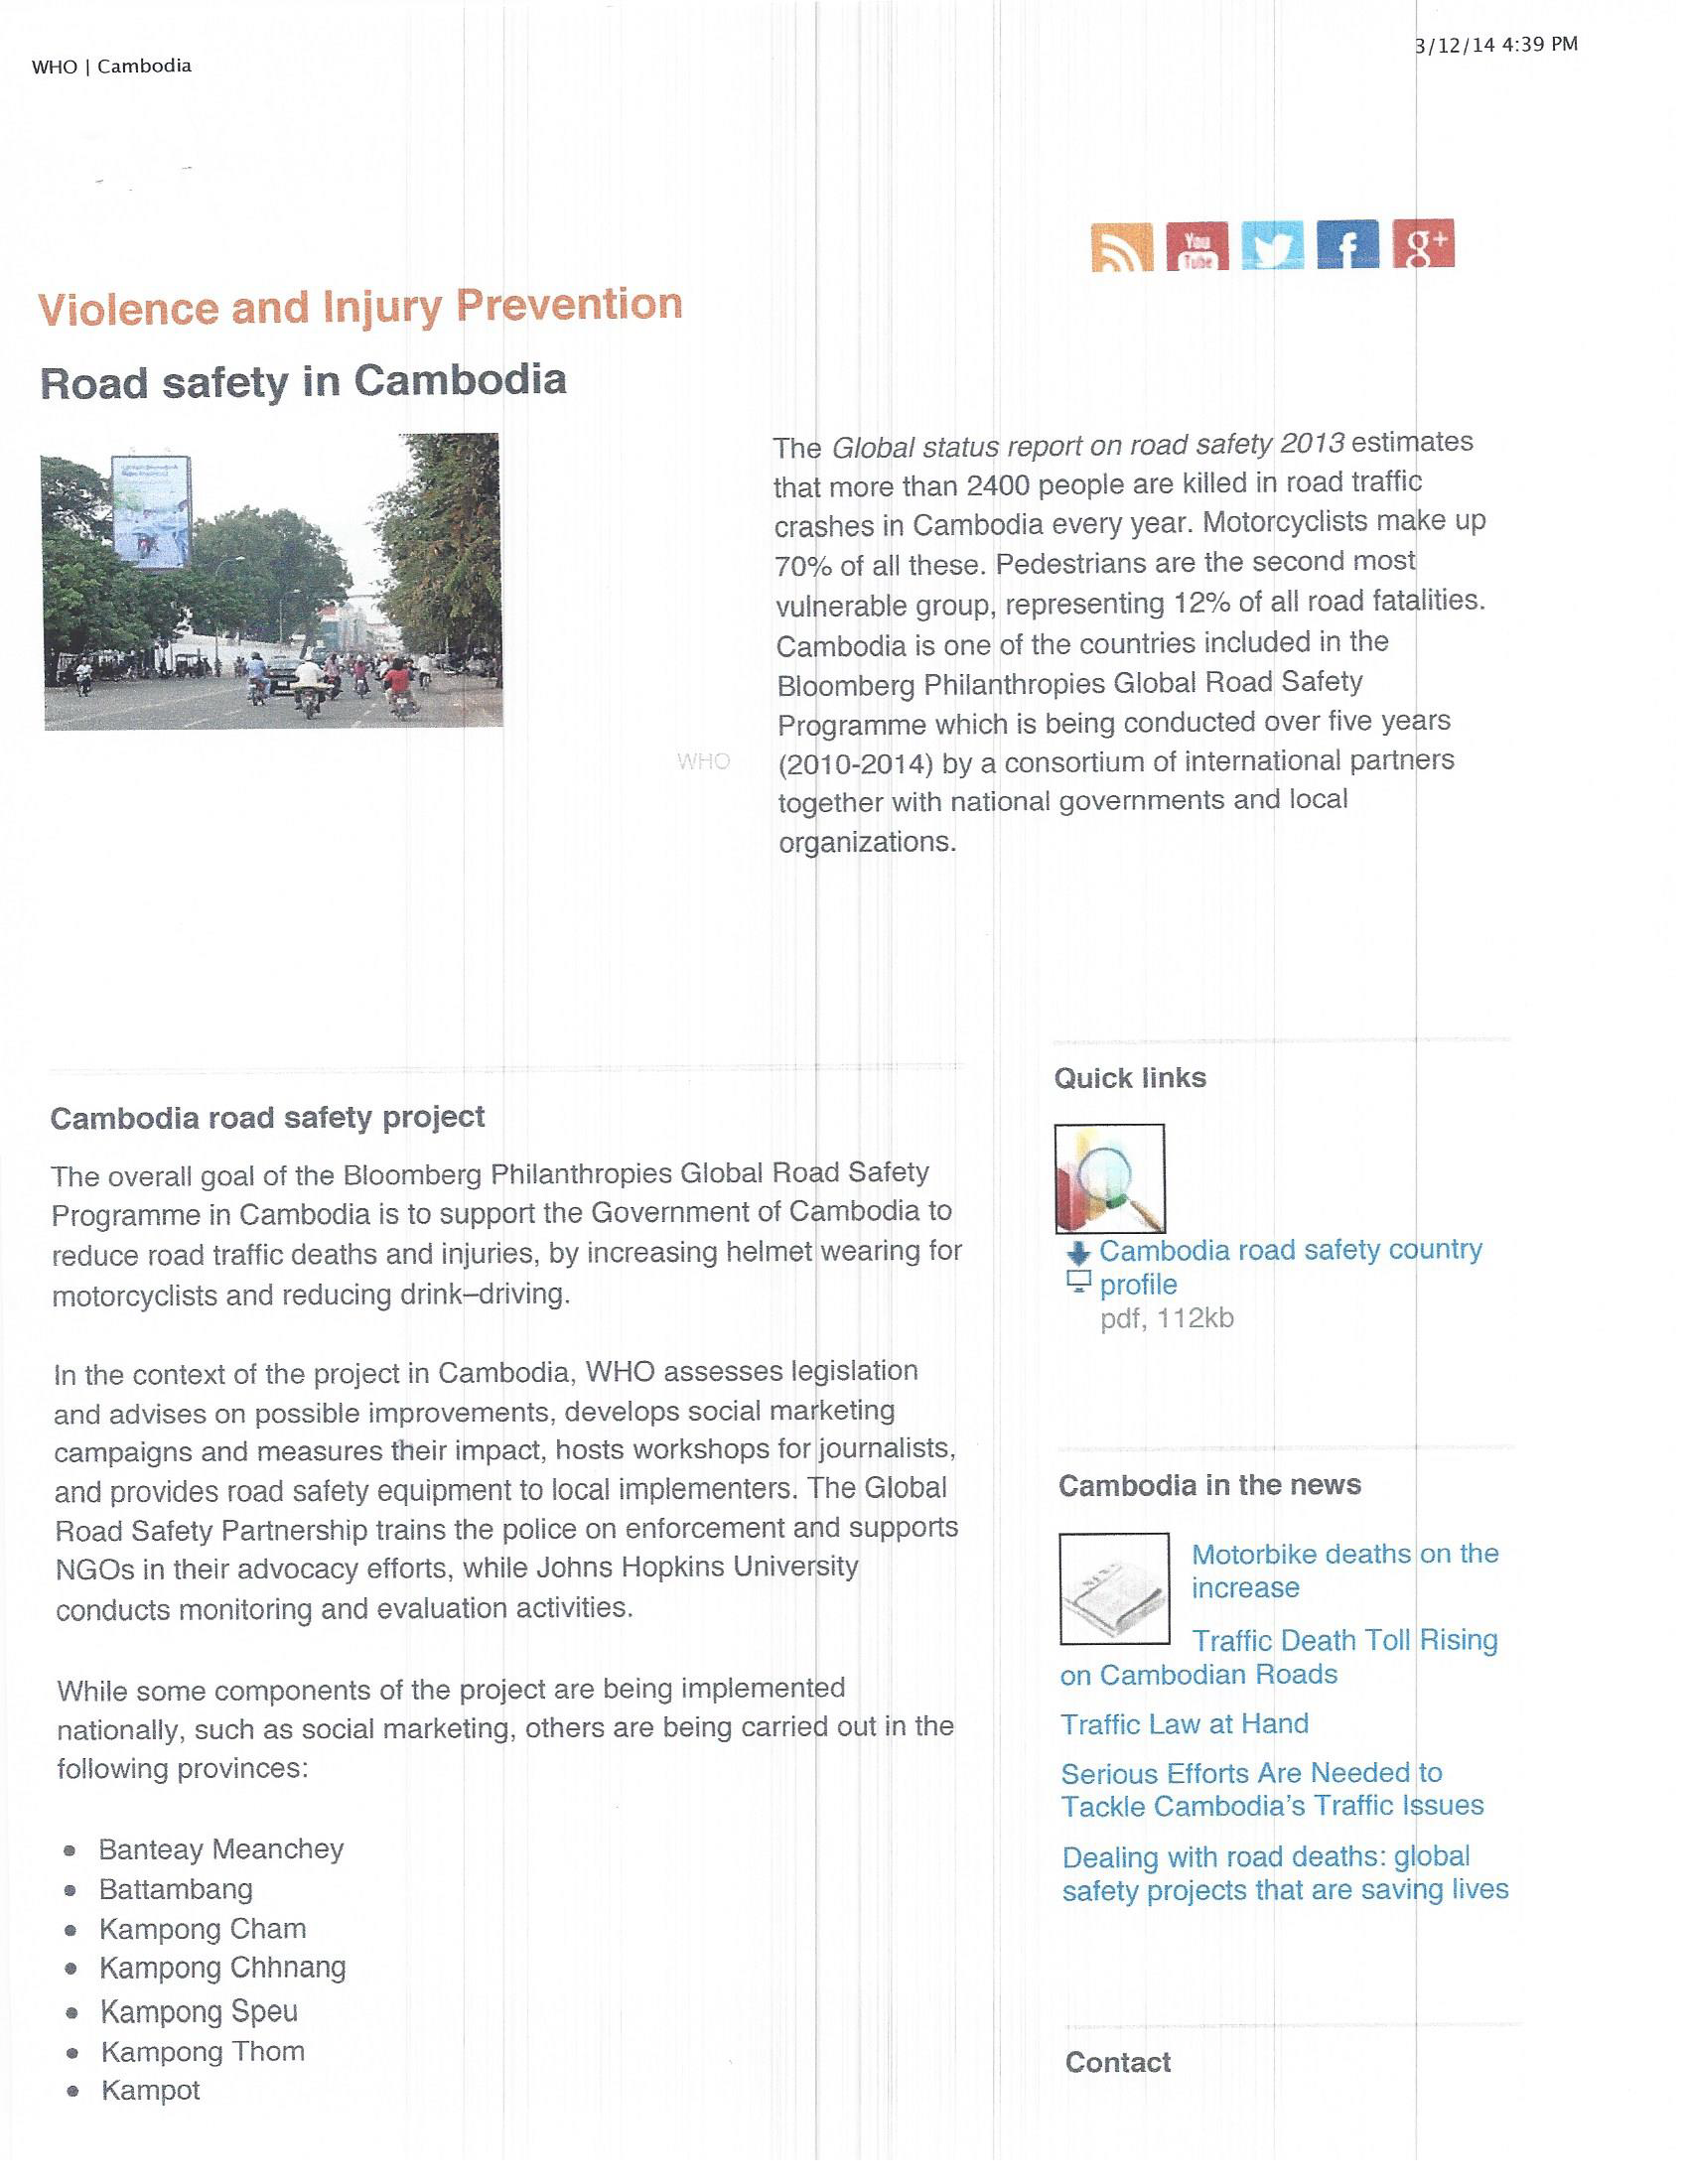 WHO Road Safety in Cambodia_Page_1.png